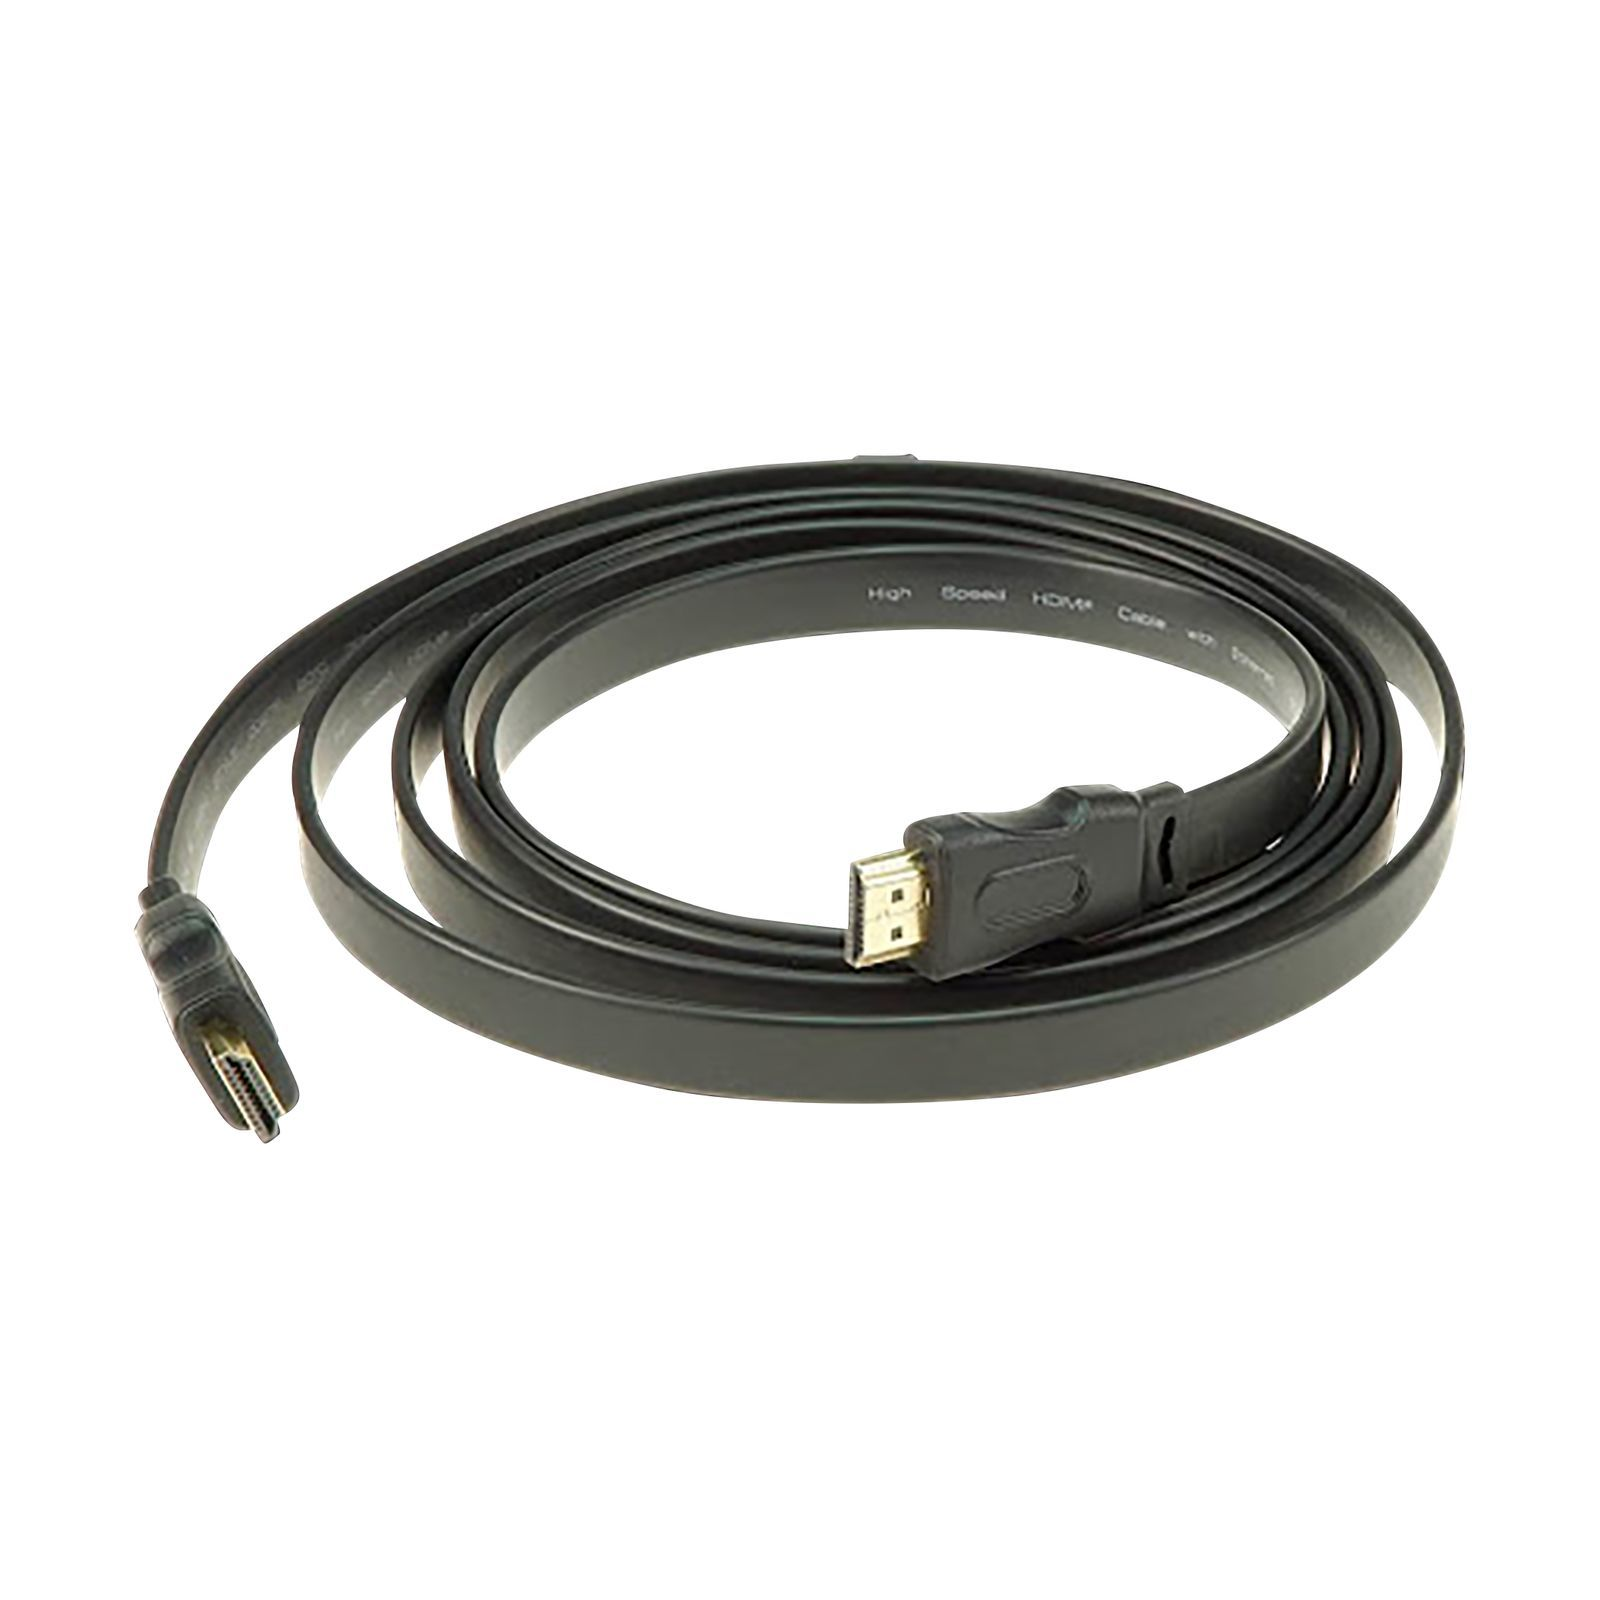 Klotz HDMI 1.4a High Speed A-A, 3 Meter, Flachkabel Produktbild